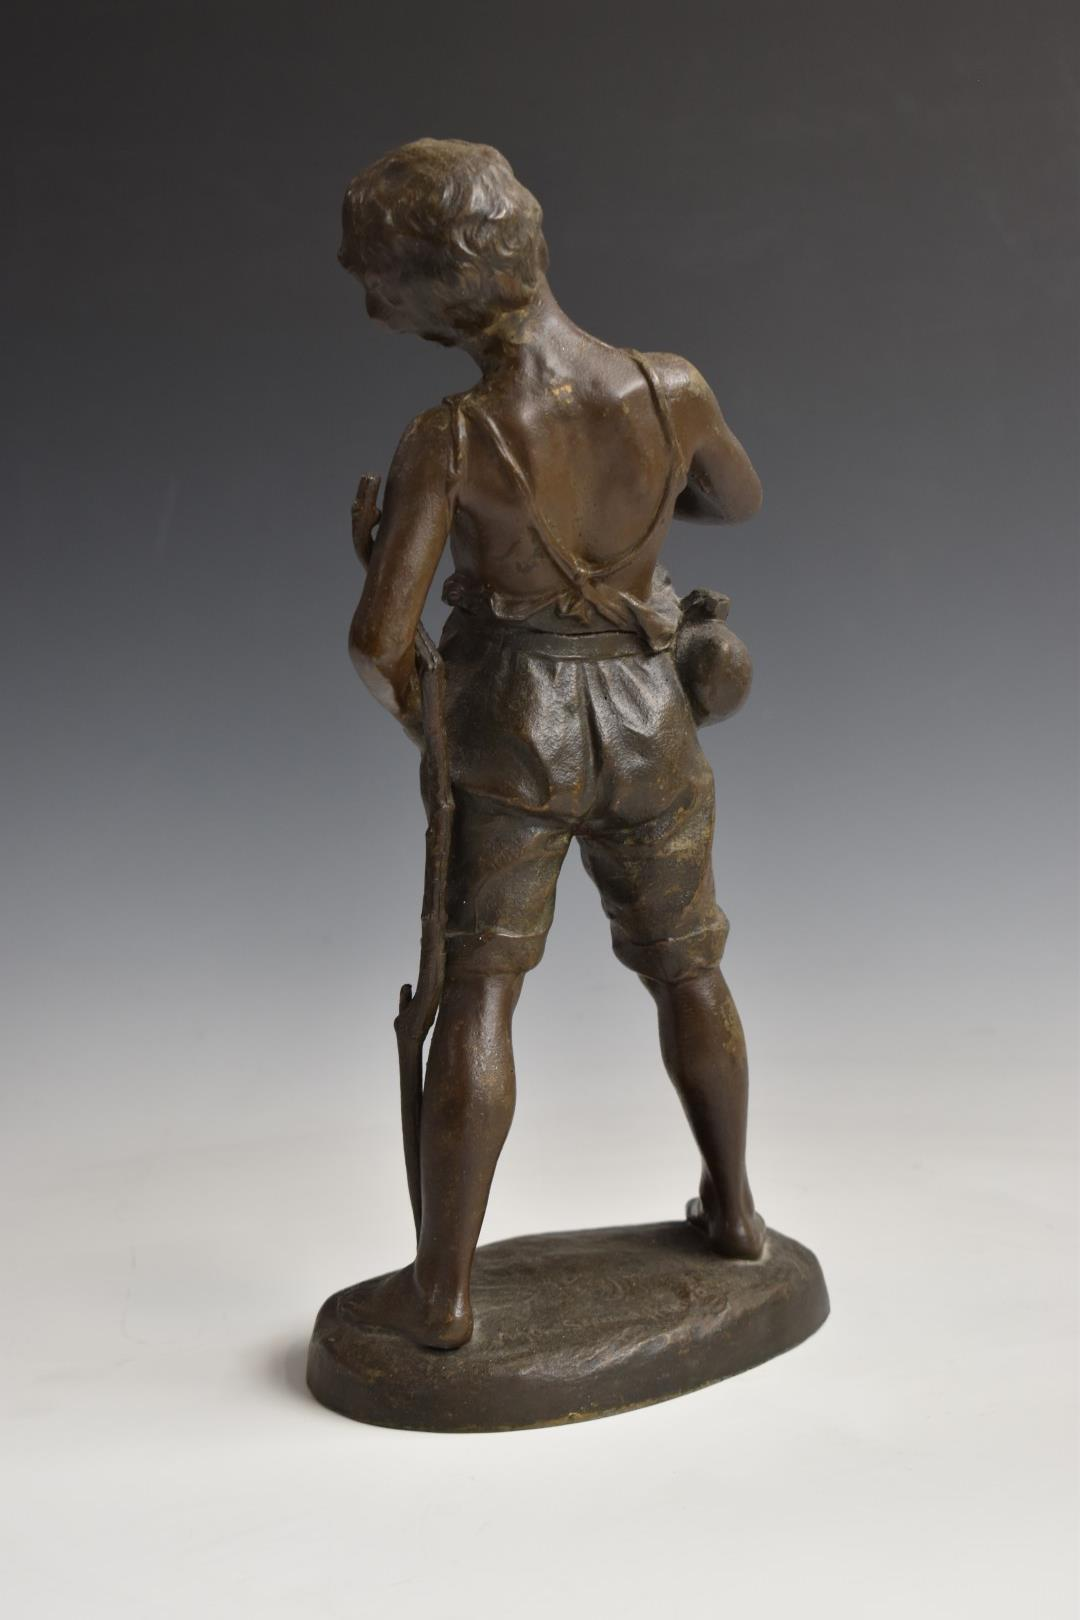 Pair of spelter figures of boys, one with books, the other with a horn, H33cm - Image 3 of 6